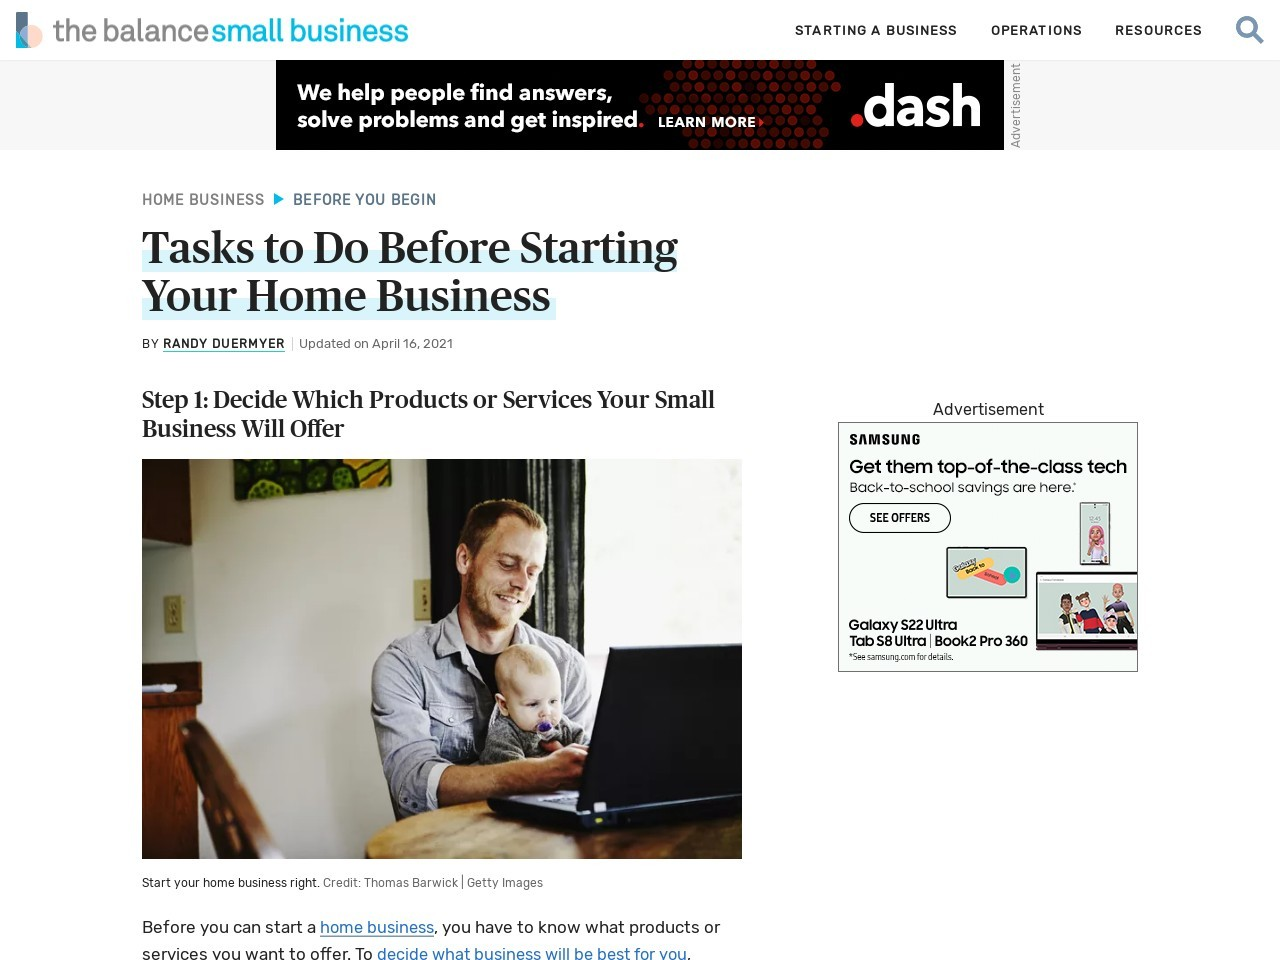 10 Tasks to Do Before Starting Your Home Business